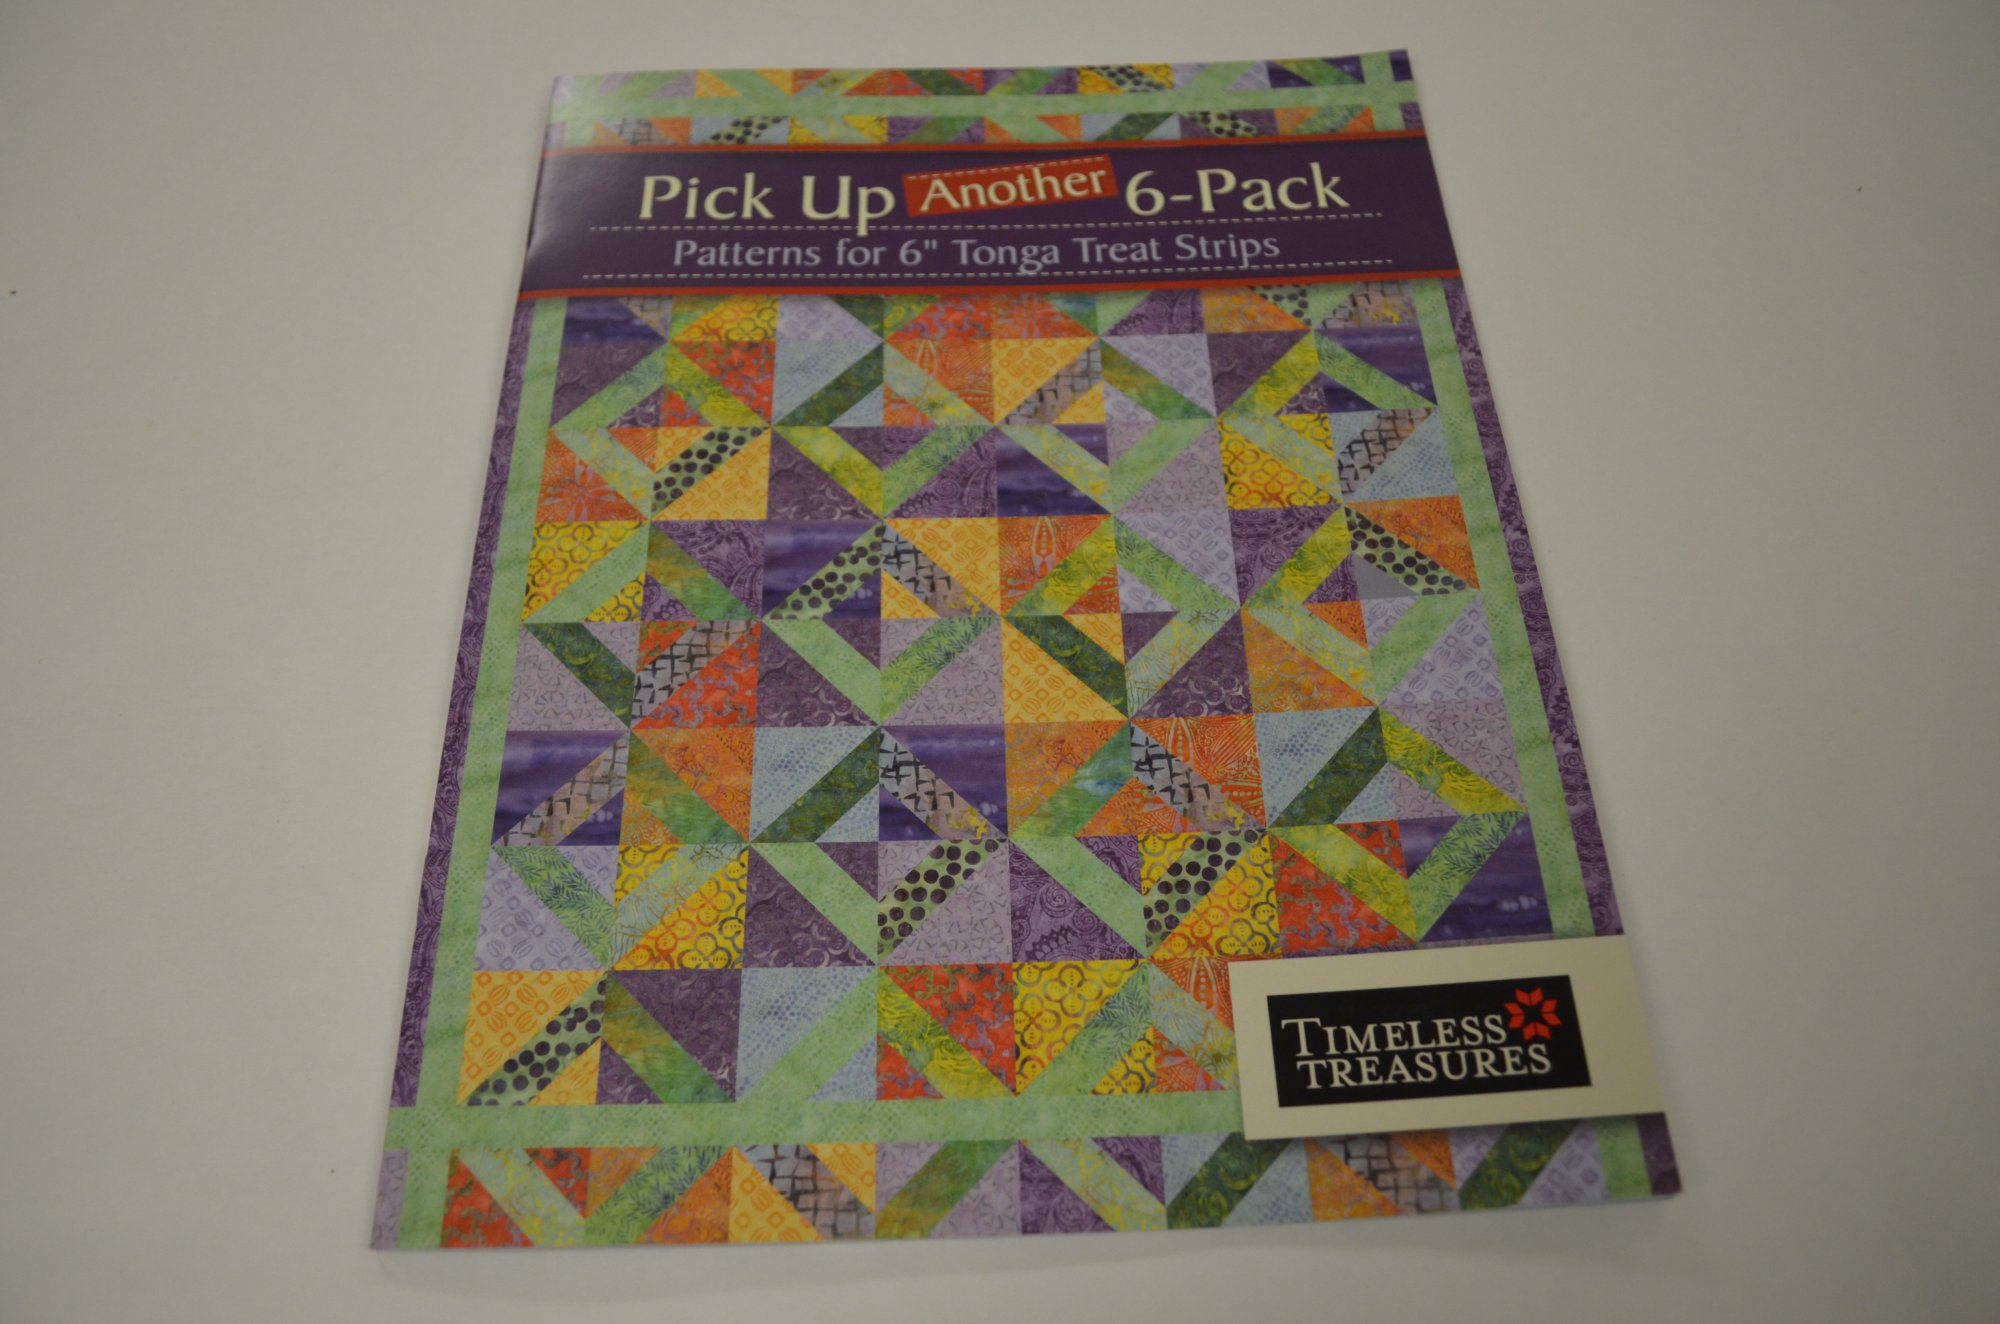 Pick-Up Another 6-Pack Book